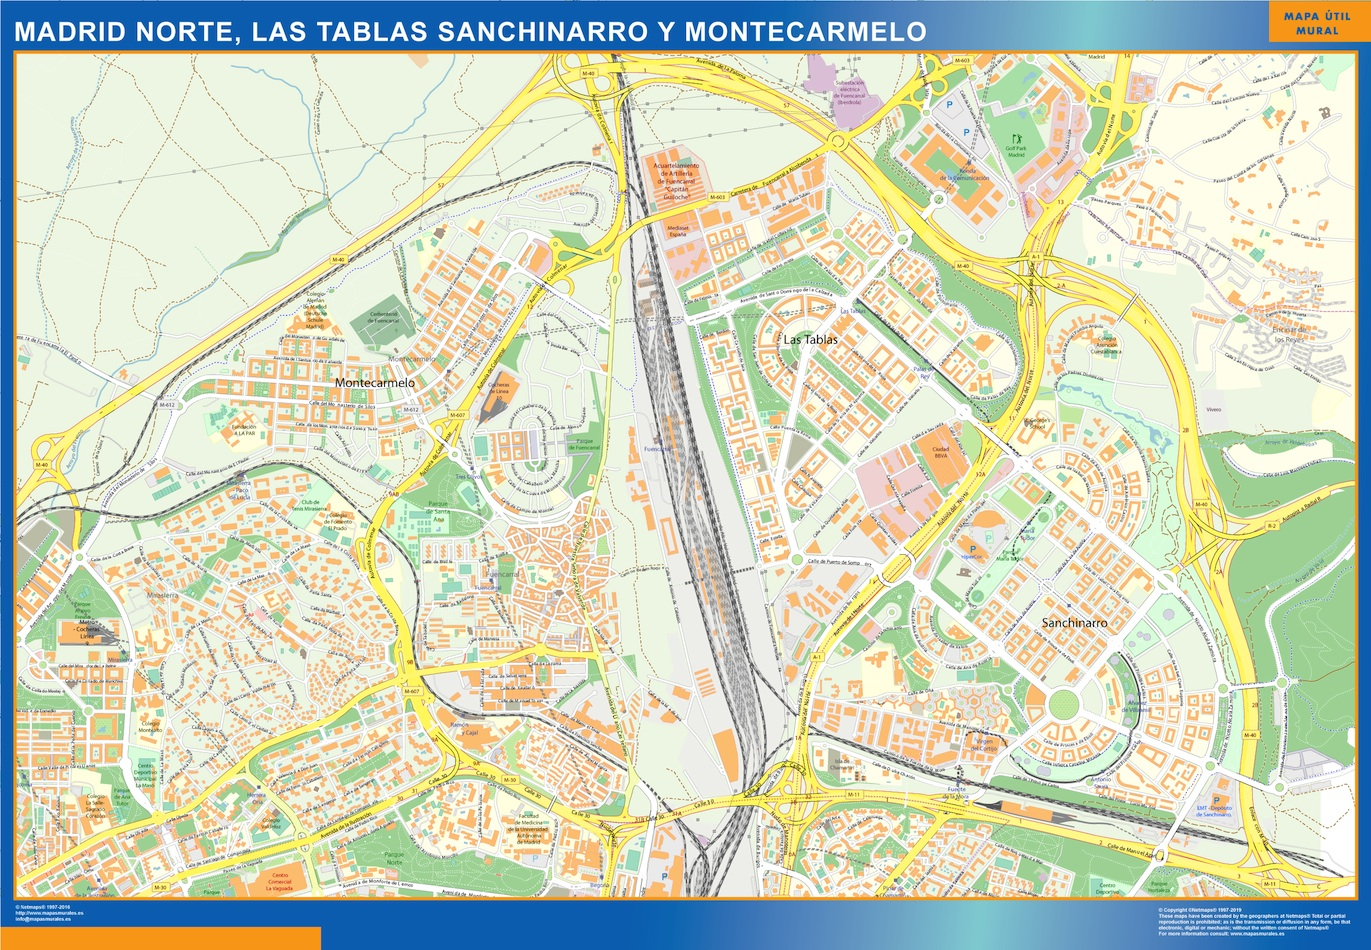 Mapa Madrid Norte